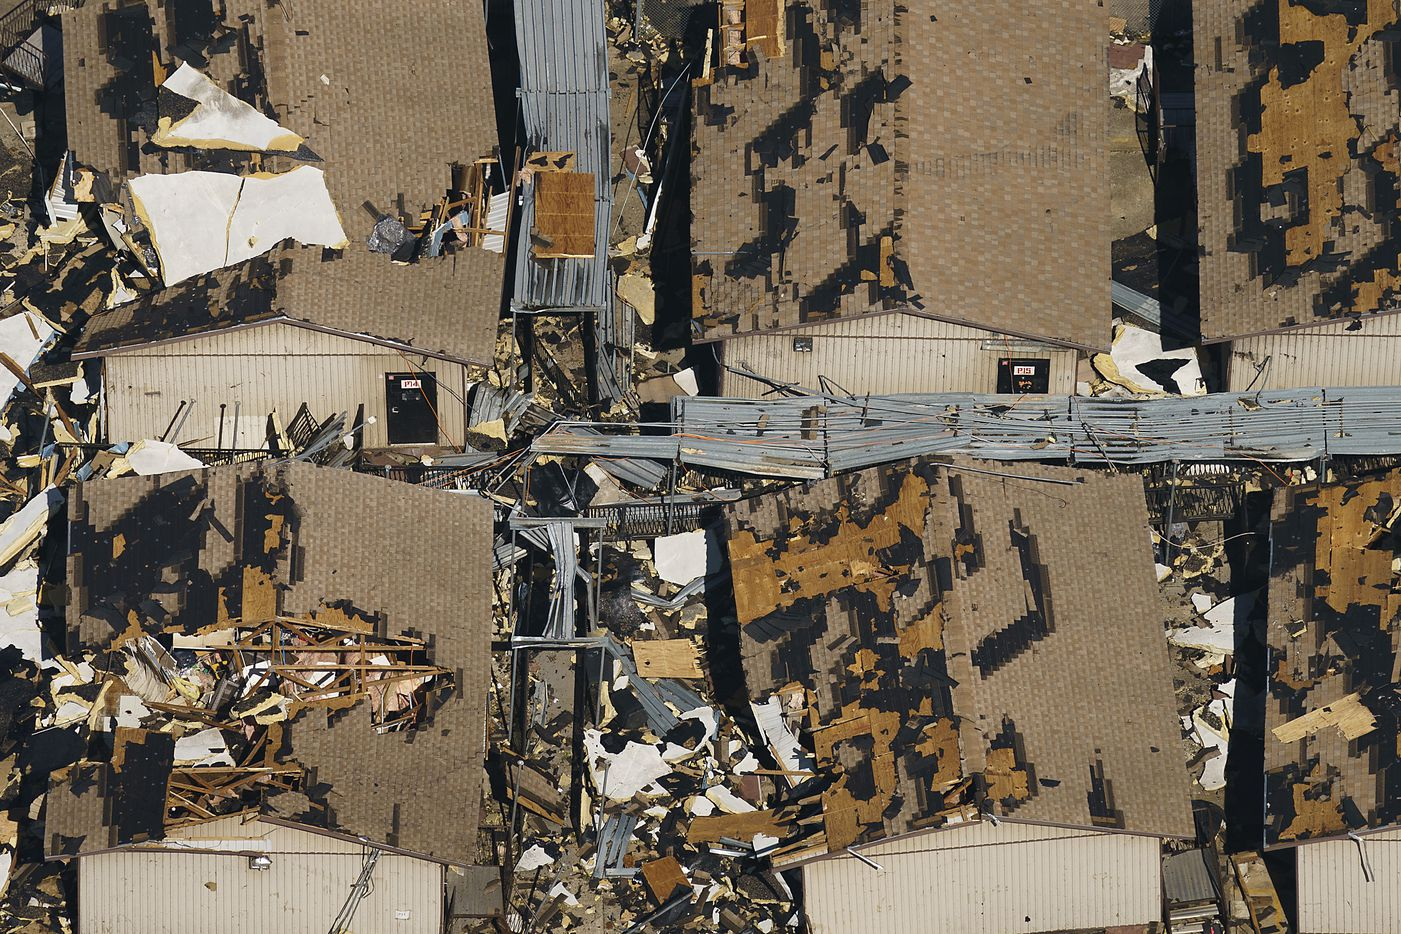 Temporary classroom are seen buried in rubble at Thomas Jefferson HIgh School in an aerial view of tornado damage on Monday, Oct. 21, 2019, in Dallas. (Smiley N. Pool/The Dallas Morning News)